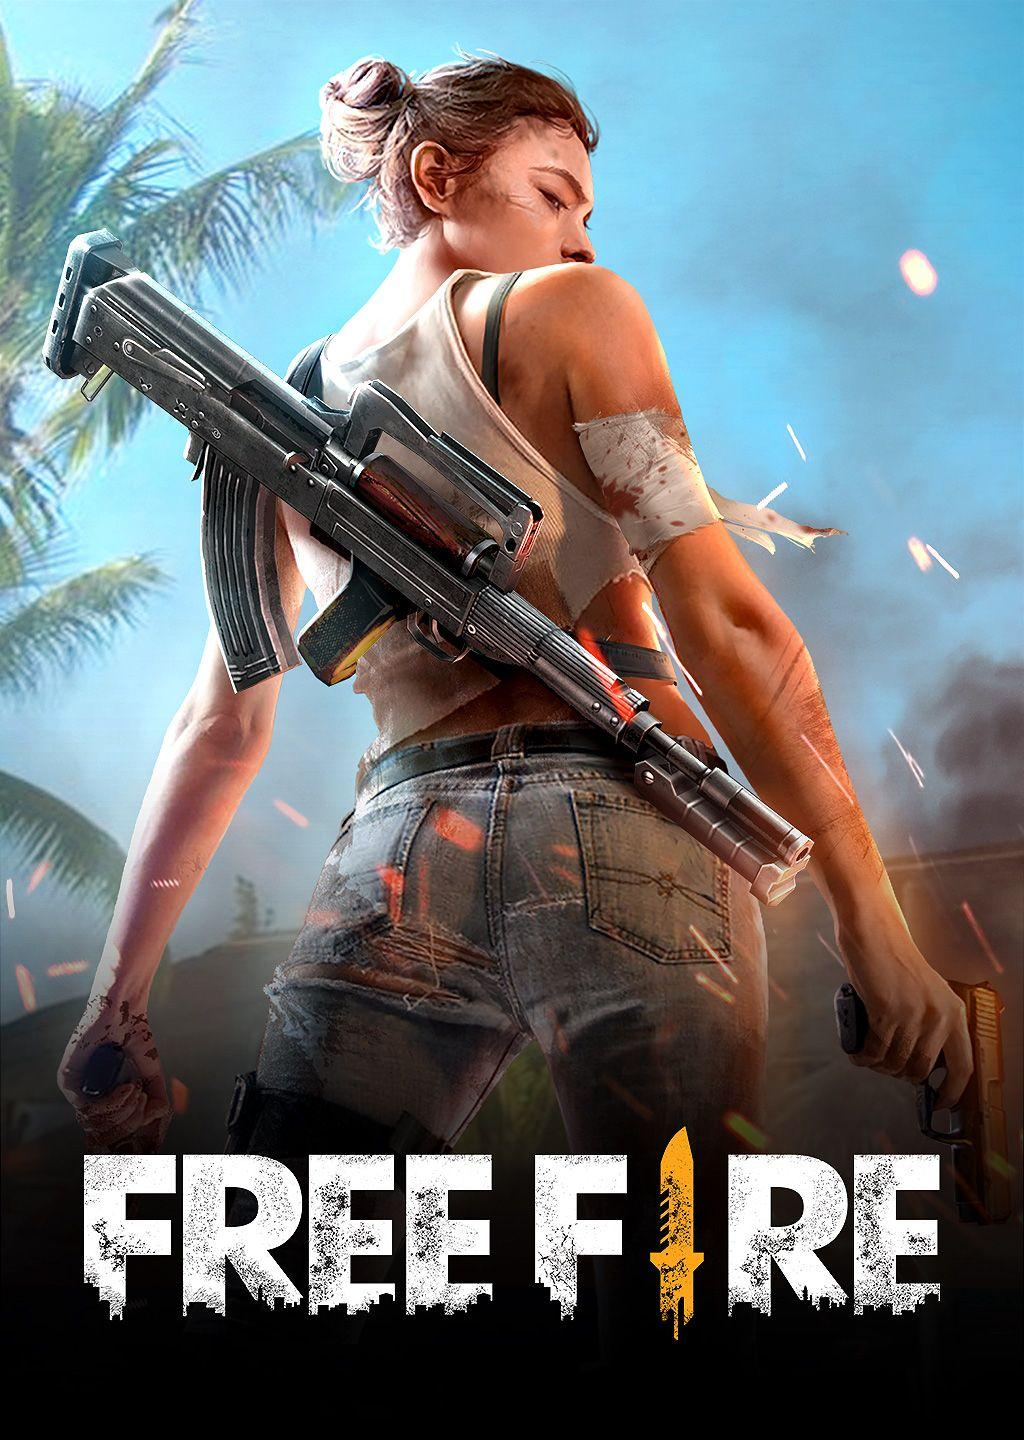 Garena Free Fire Wallpapers Wallpaper Cave